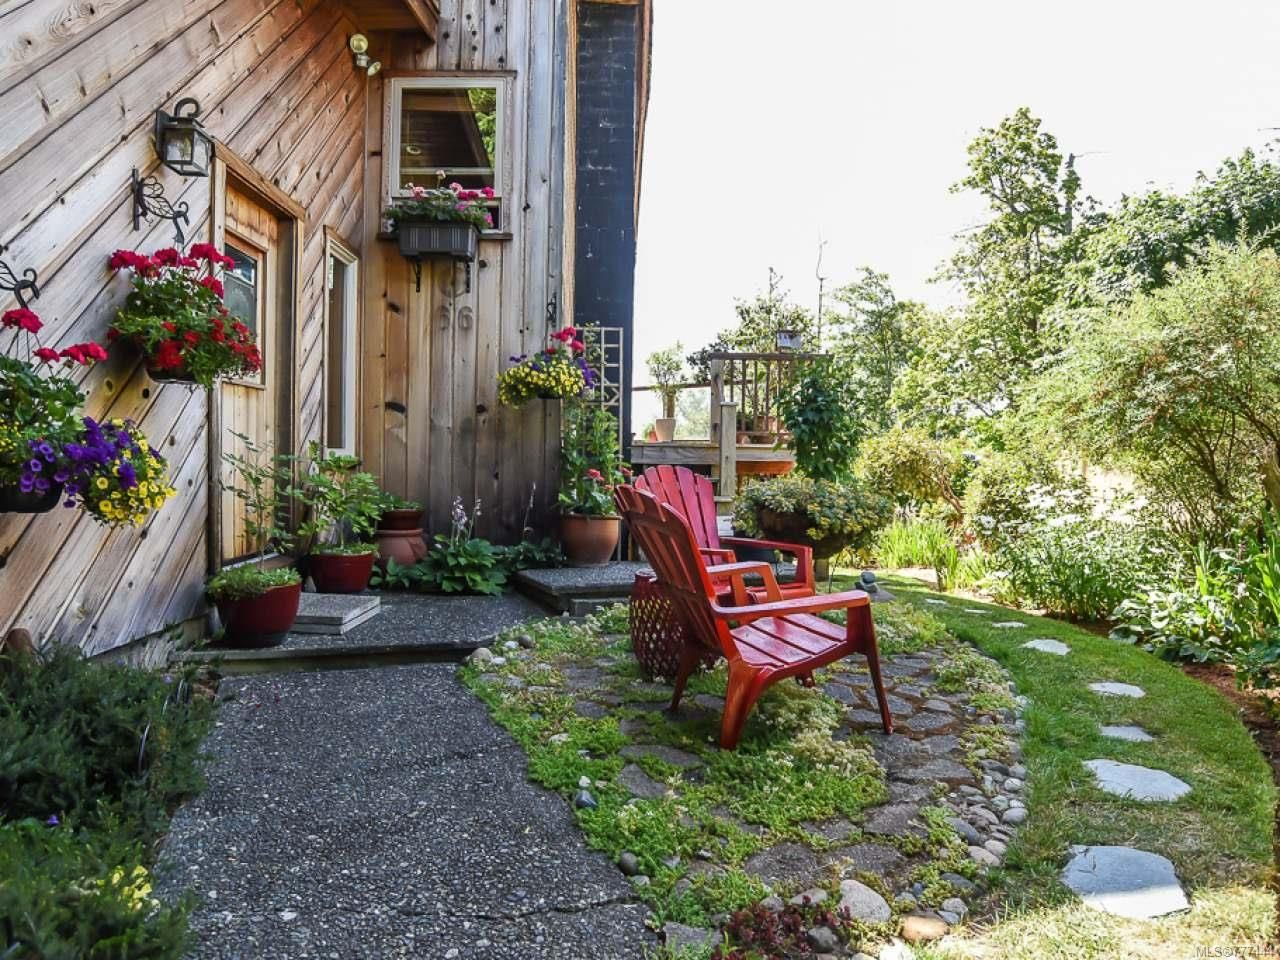 Main Photo: 66 Orchard Park Dr in COMOX: CV Comox (Town of) House for sale (Comox Valley)  : MLS®# 777444